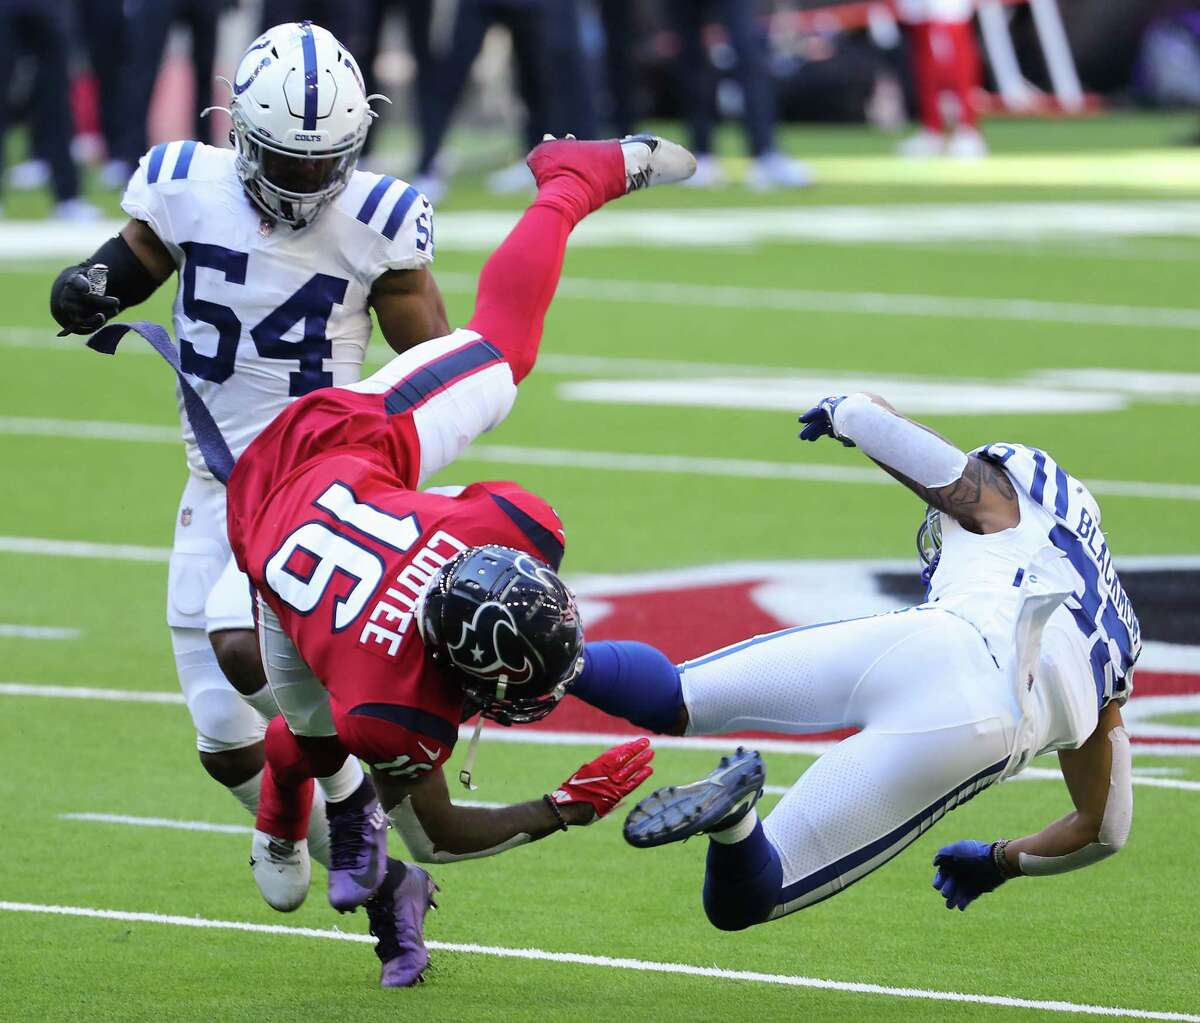 Keke Coutee figures to be in line for another day of high-volume targets given the Texans' receiver situation.